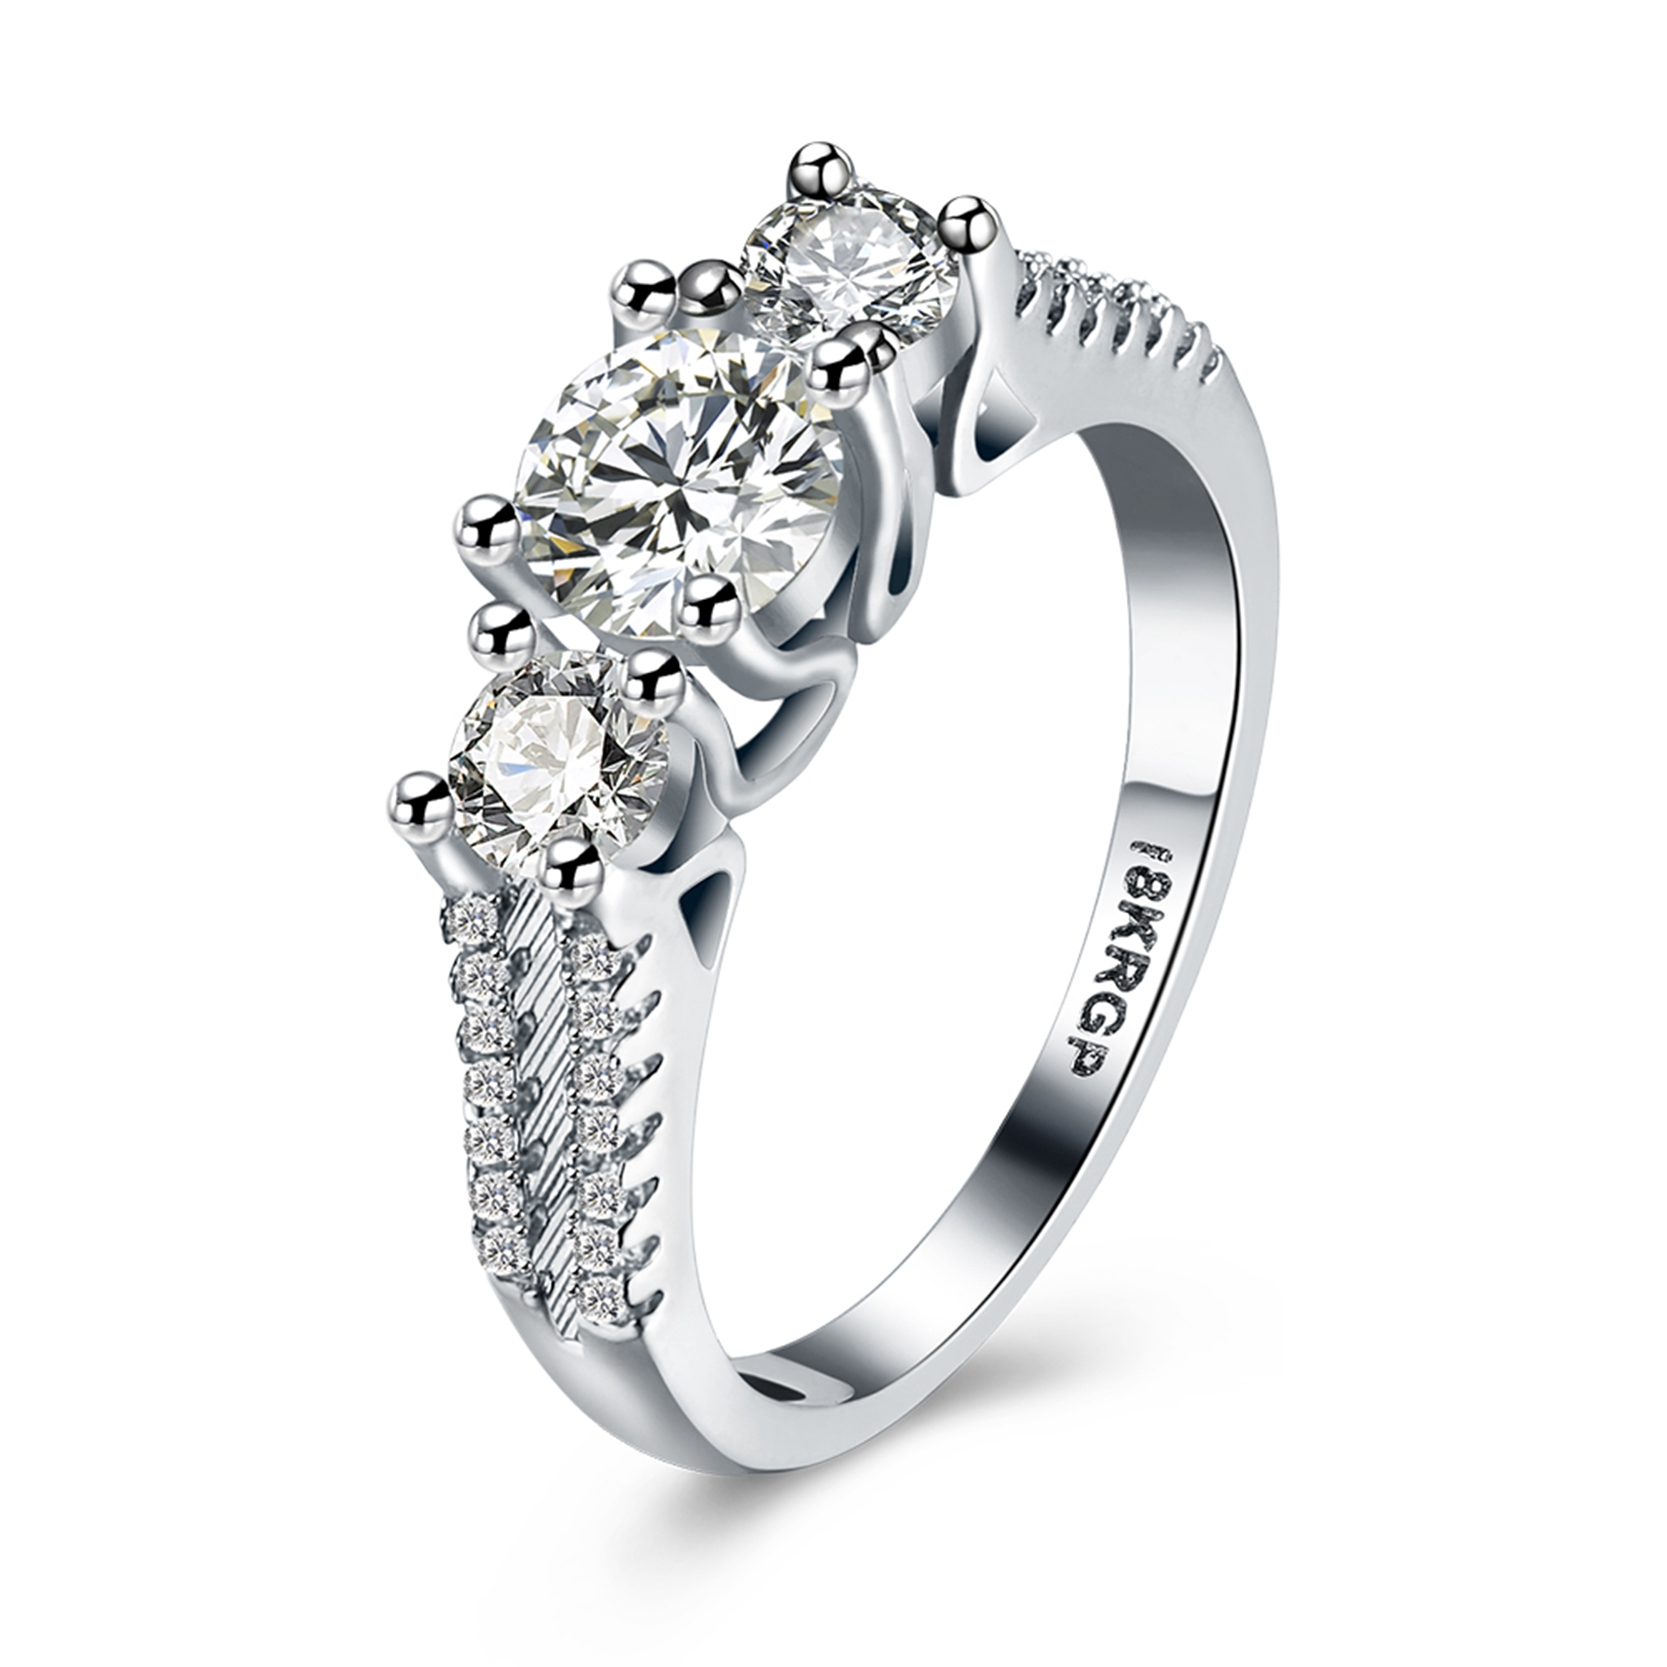 famous wedding ring designers ringscladdagh